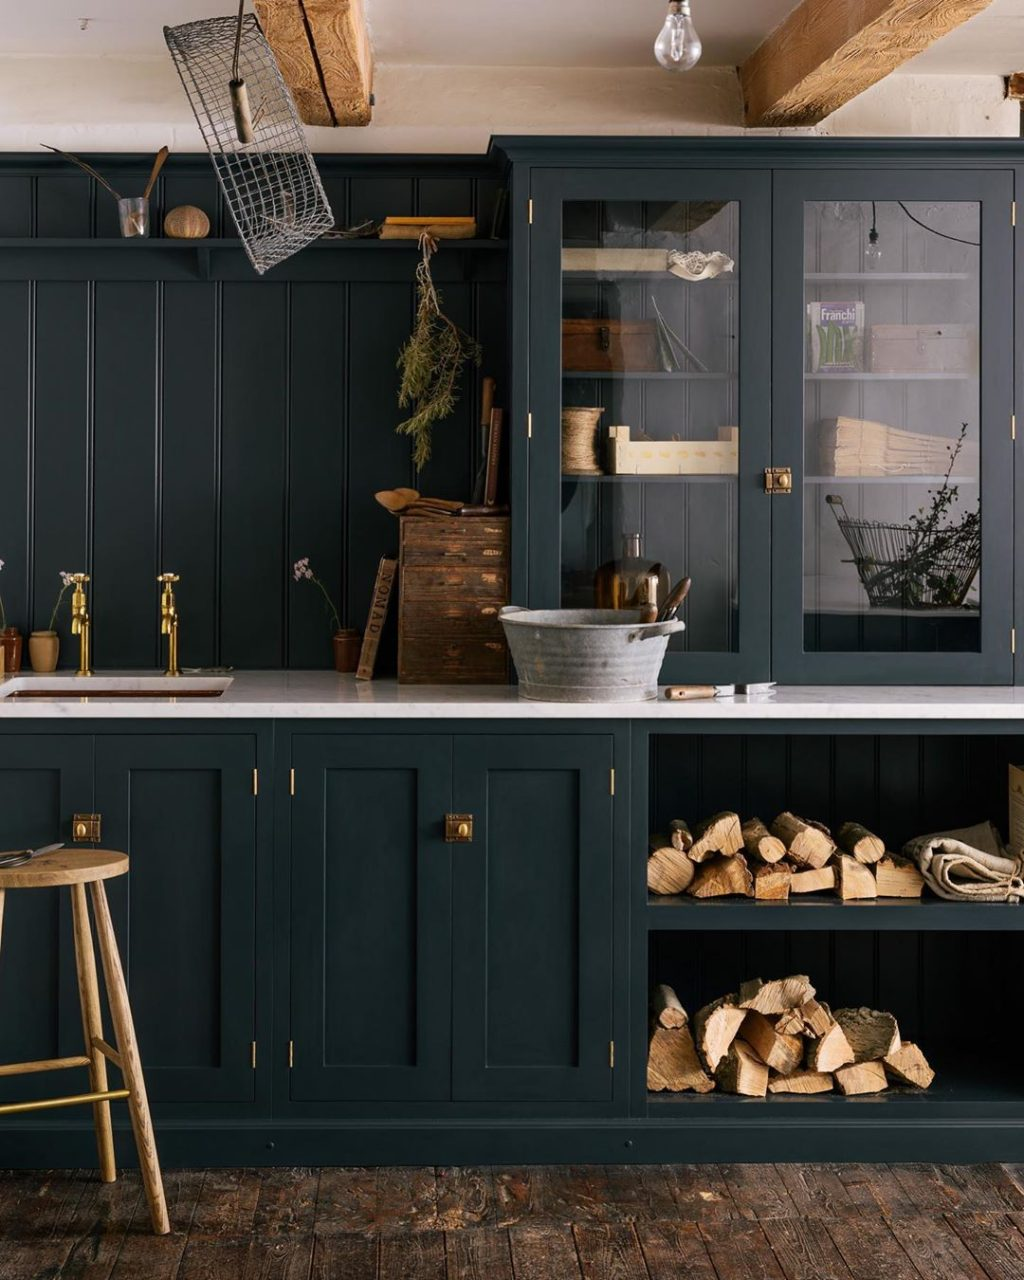 Kitchen Colors With Dark Cabinets: Colors We're Considering For Our Phase 1 Kitchen Cabinets